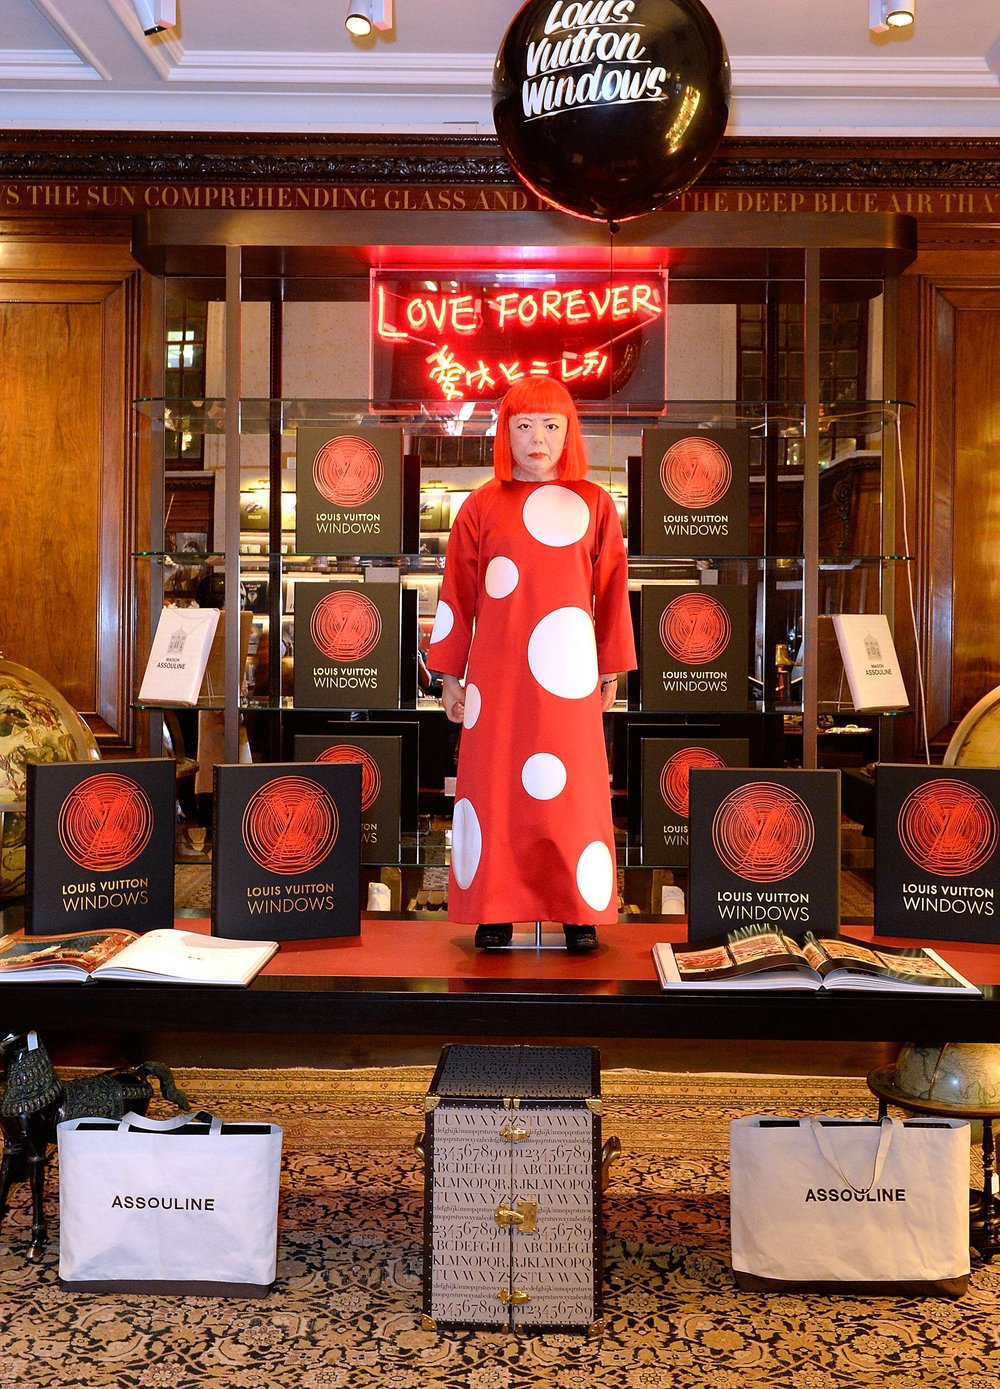 BVF_LVWindows_MaisonAssouline_2015.jpg